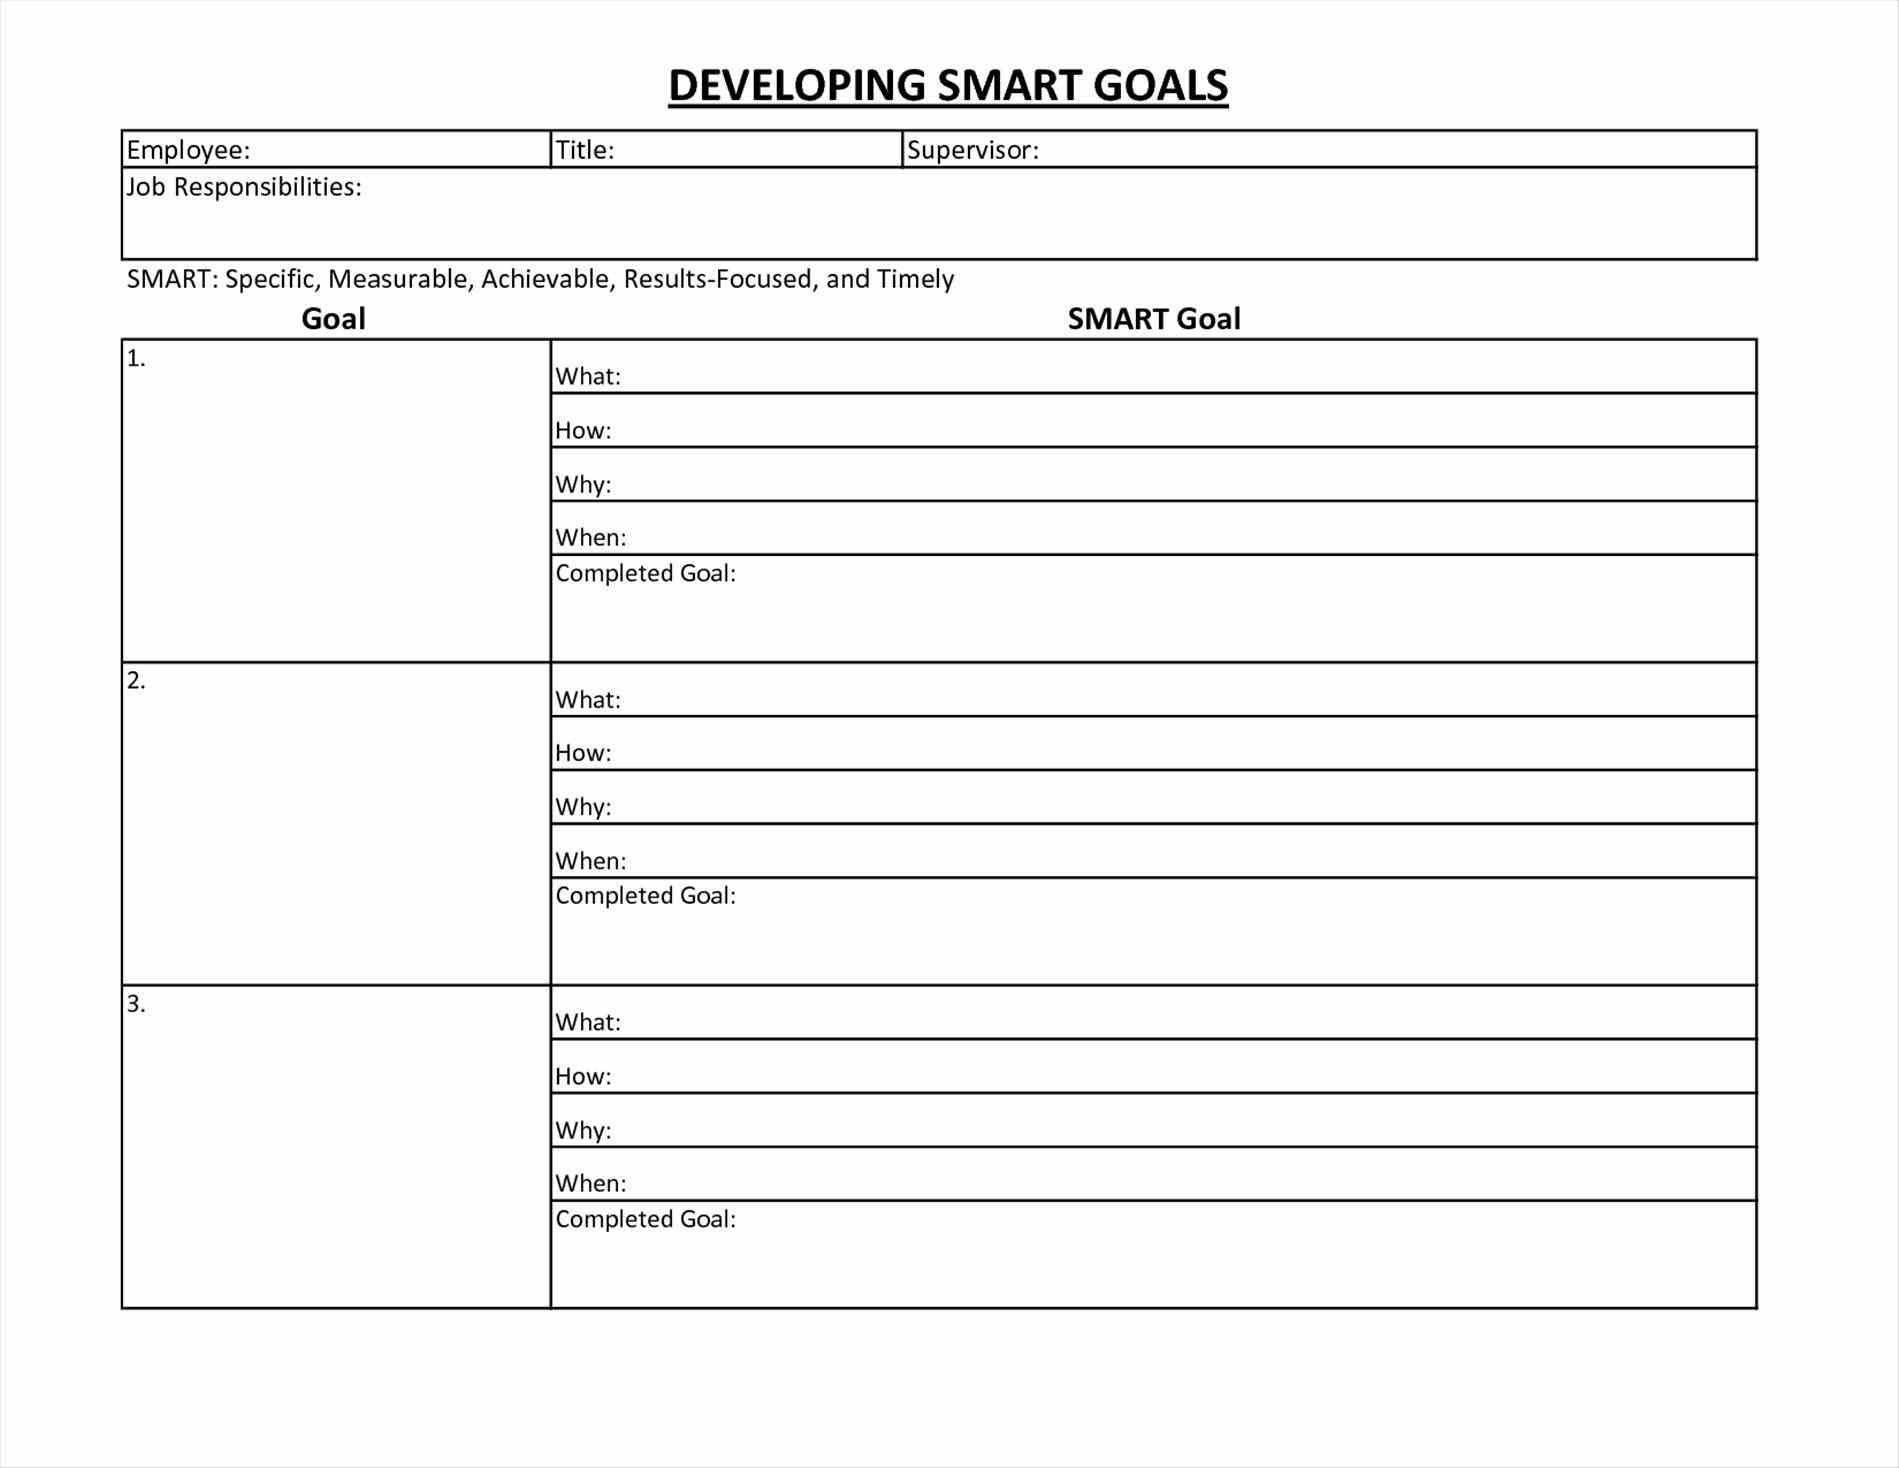 Worksheets Smart Goal Worksheet For Students pictures goal setting template excel smart goals worksheet newpcairport pdf personal sheet worksheets